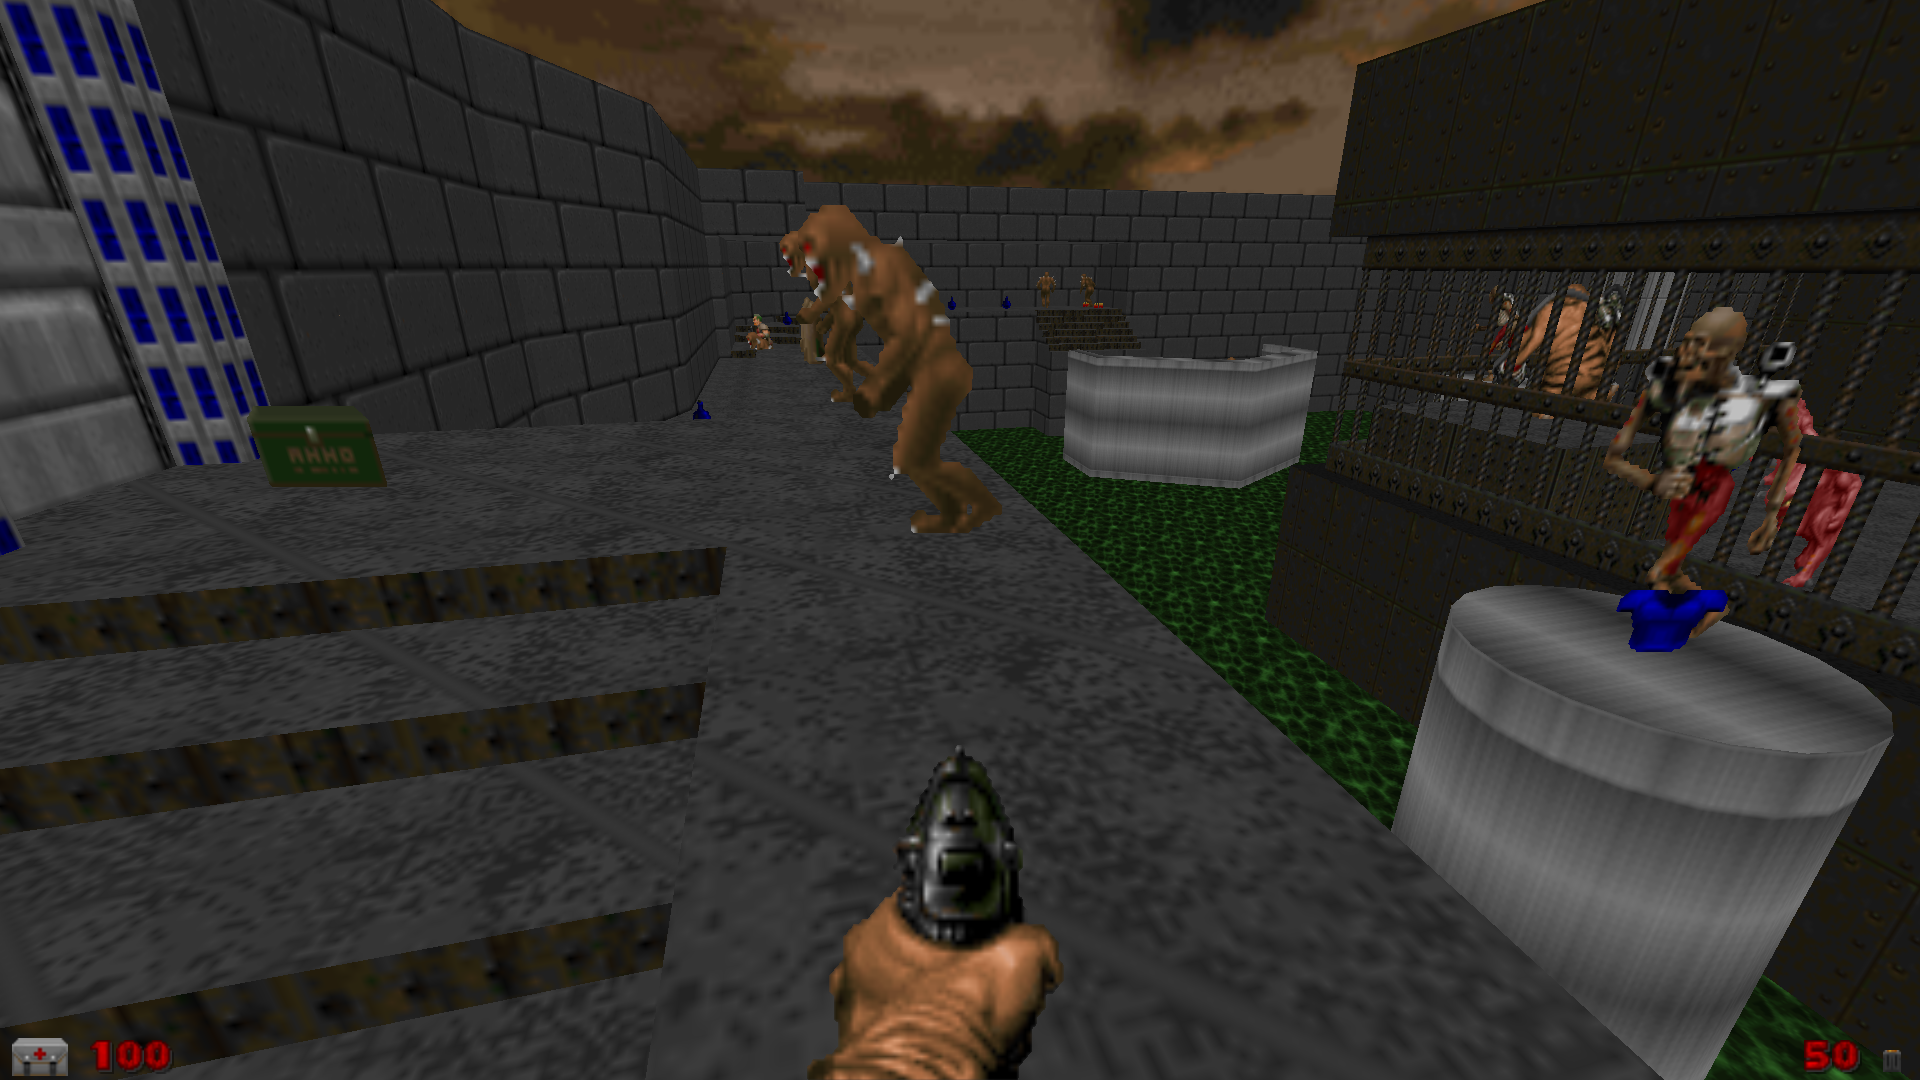 Screenshot_Doom_20200926_110329.png.e4fe4335568be46f1bd4292ea7338bbe.png